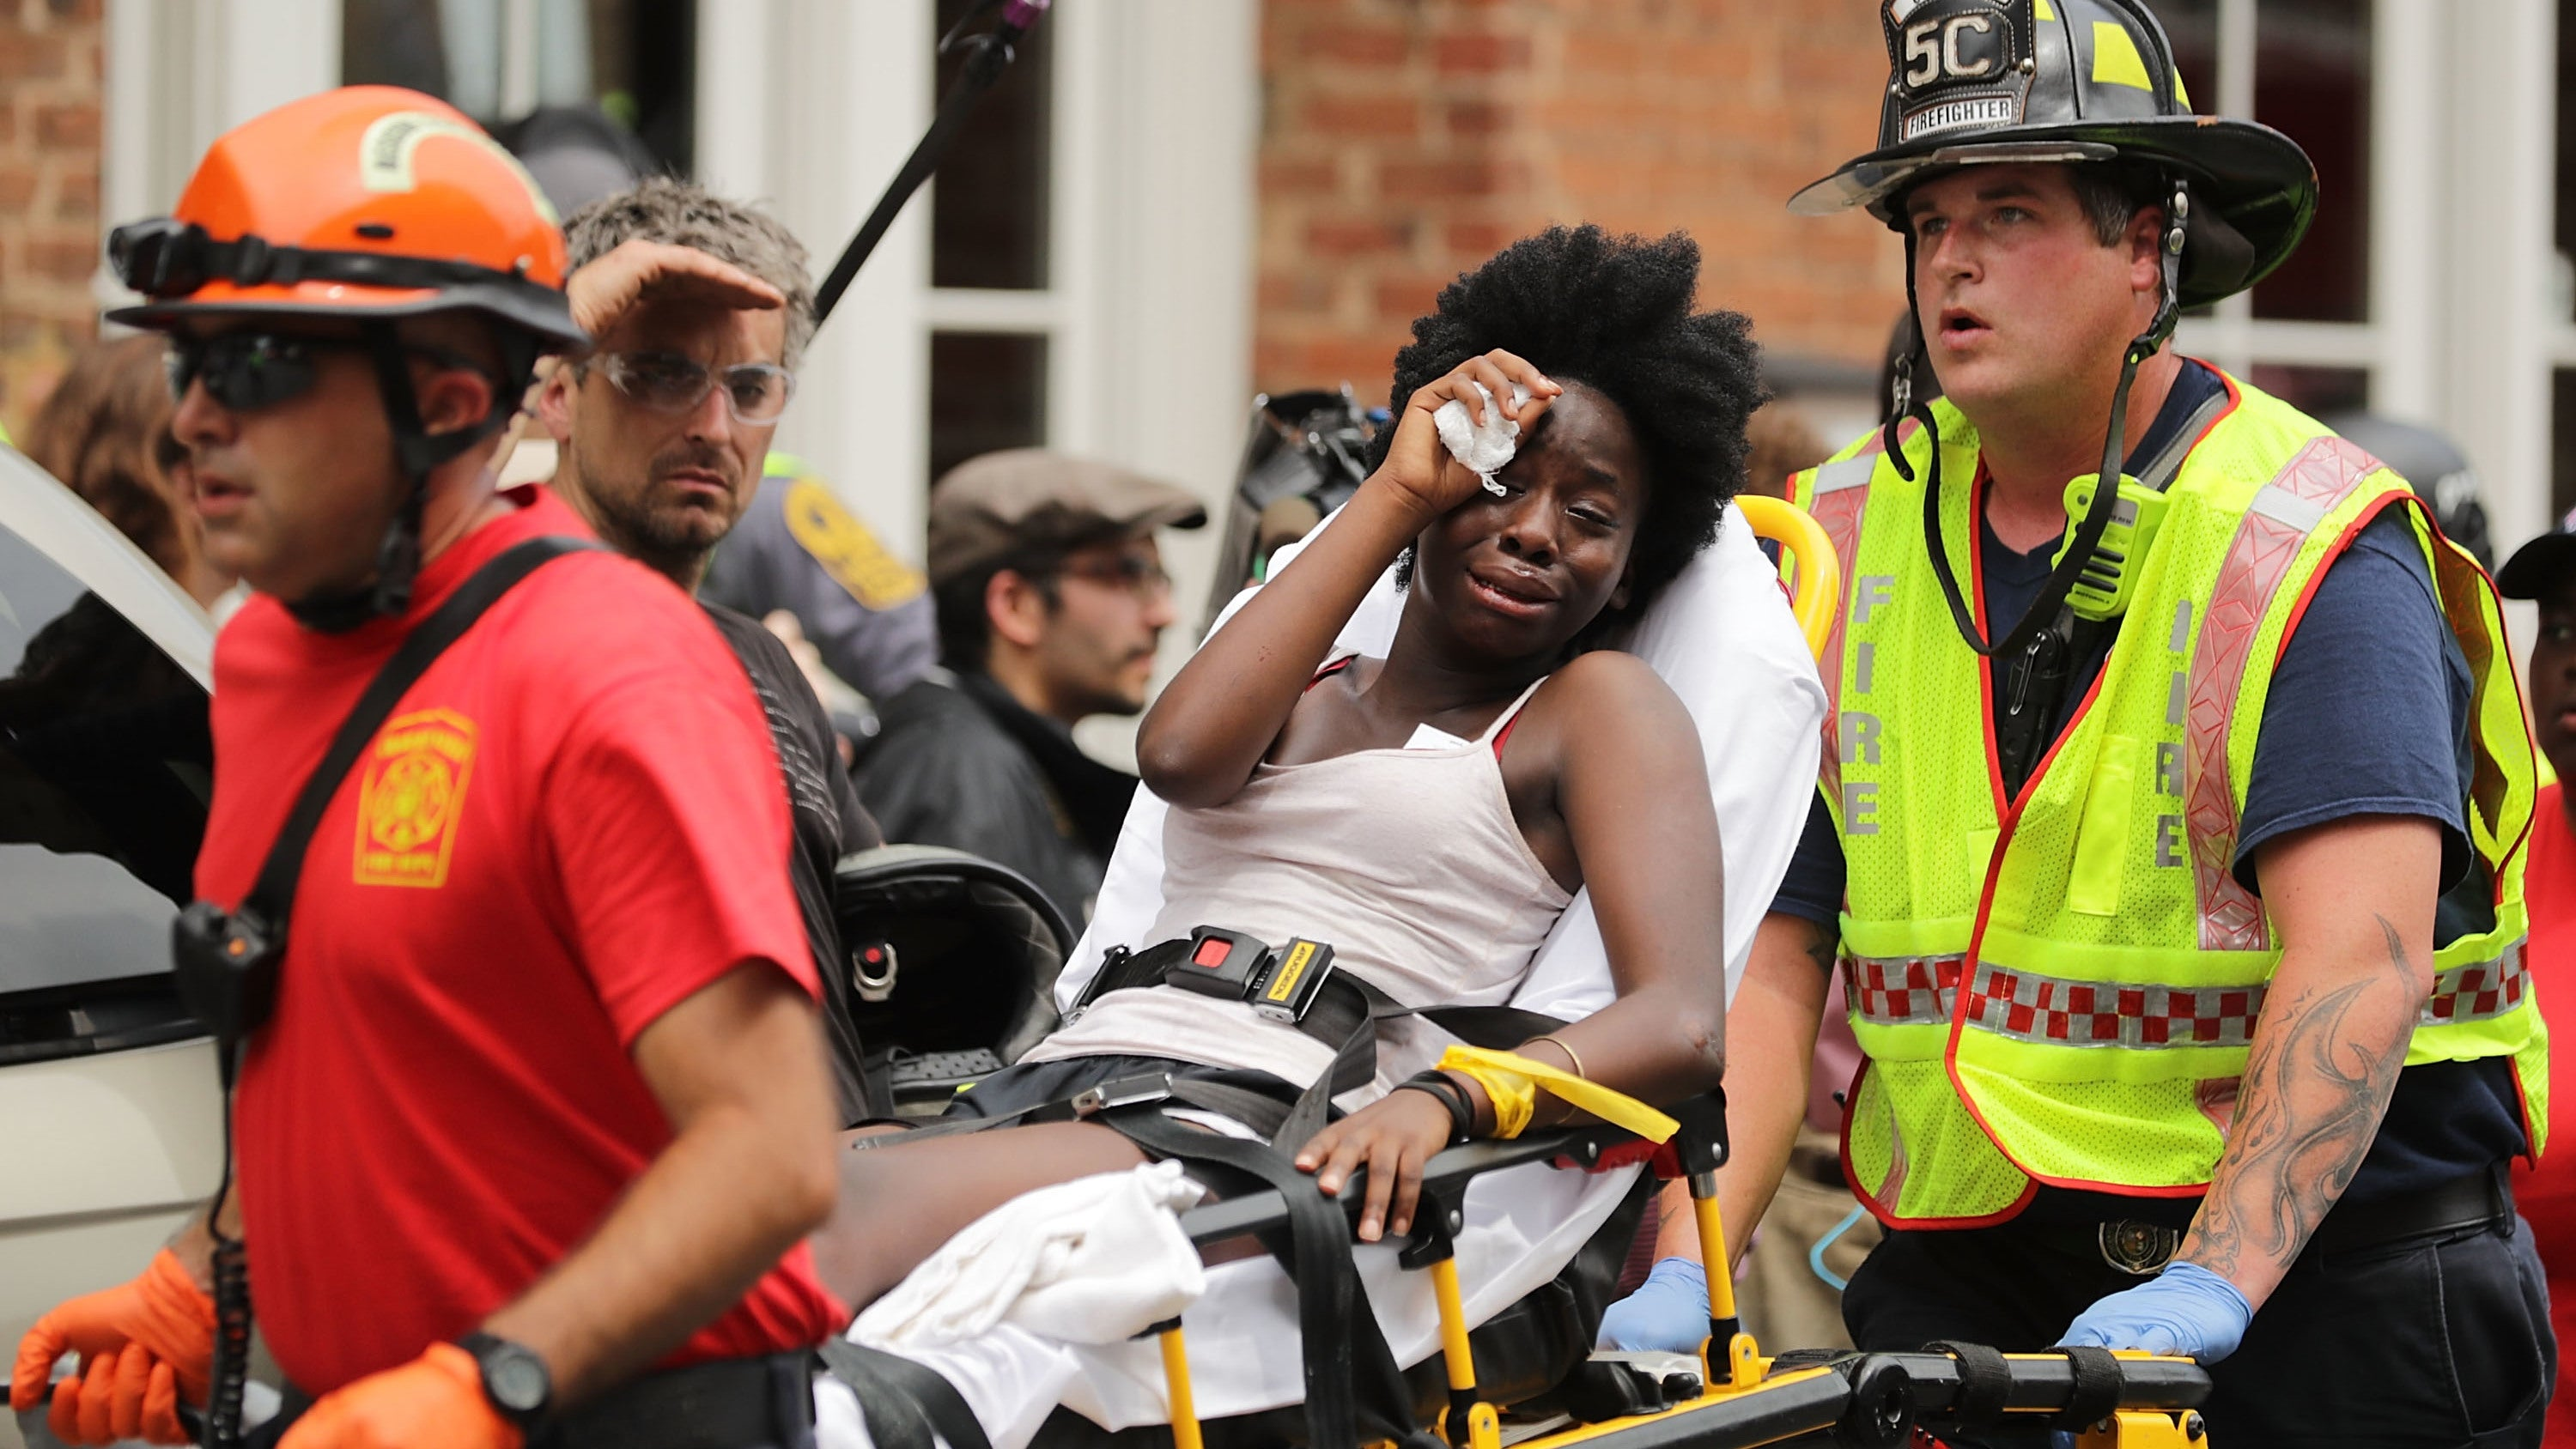 Five Things You Can Do In The Wake Of The White Supremacist Attacks In Charlottesville